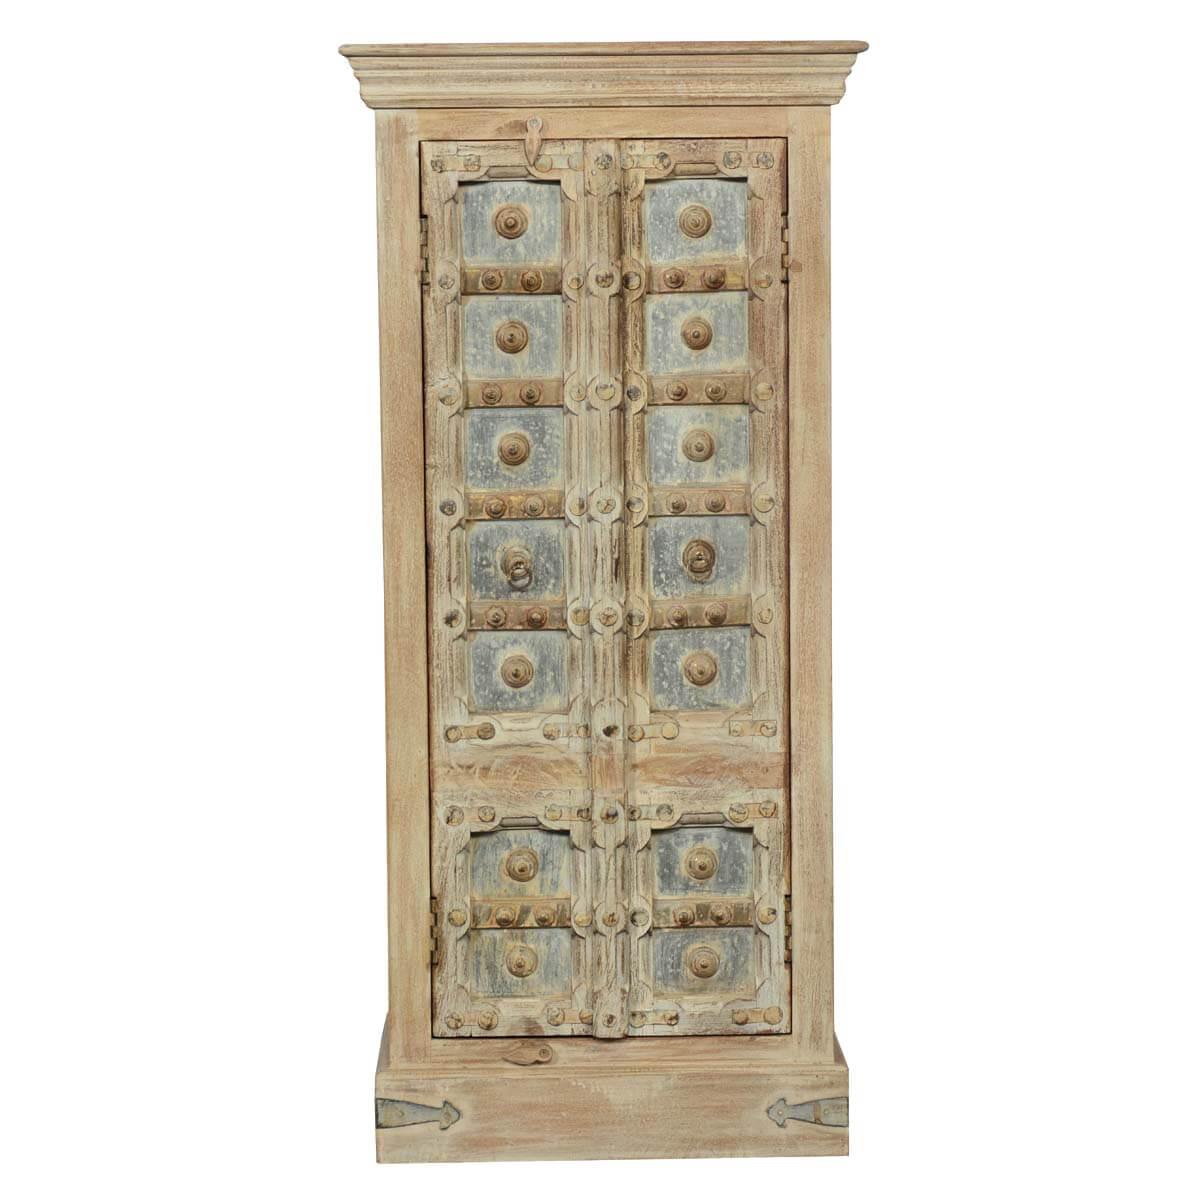 Superb img of  Vintage Gates Reclaimed Wood Storage Cabinet Bedroom Armoire with #B48317 color and 1200x1200 pixels